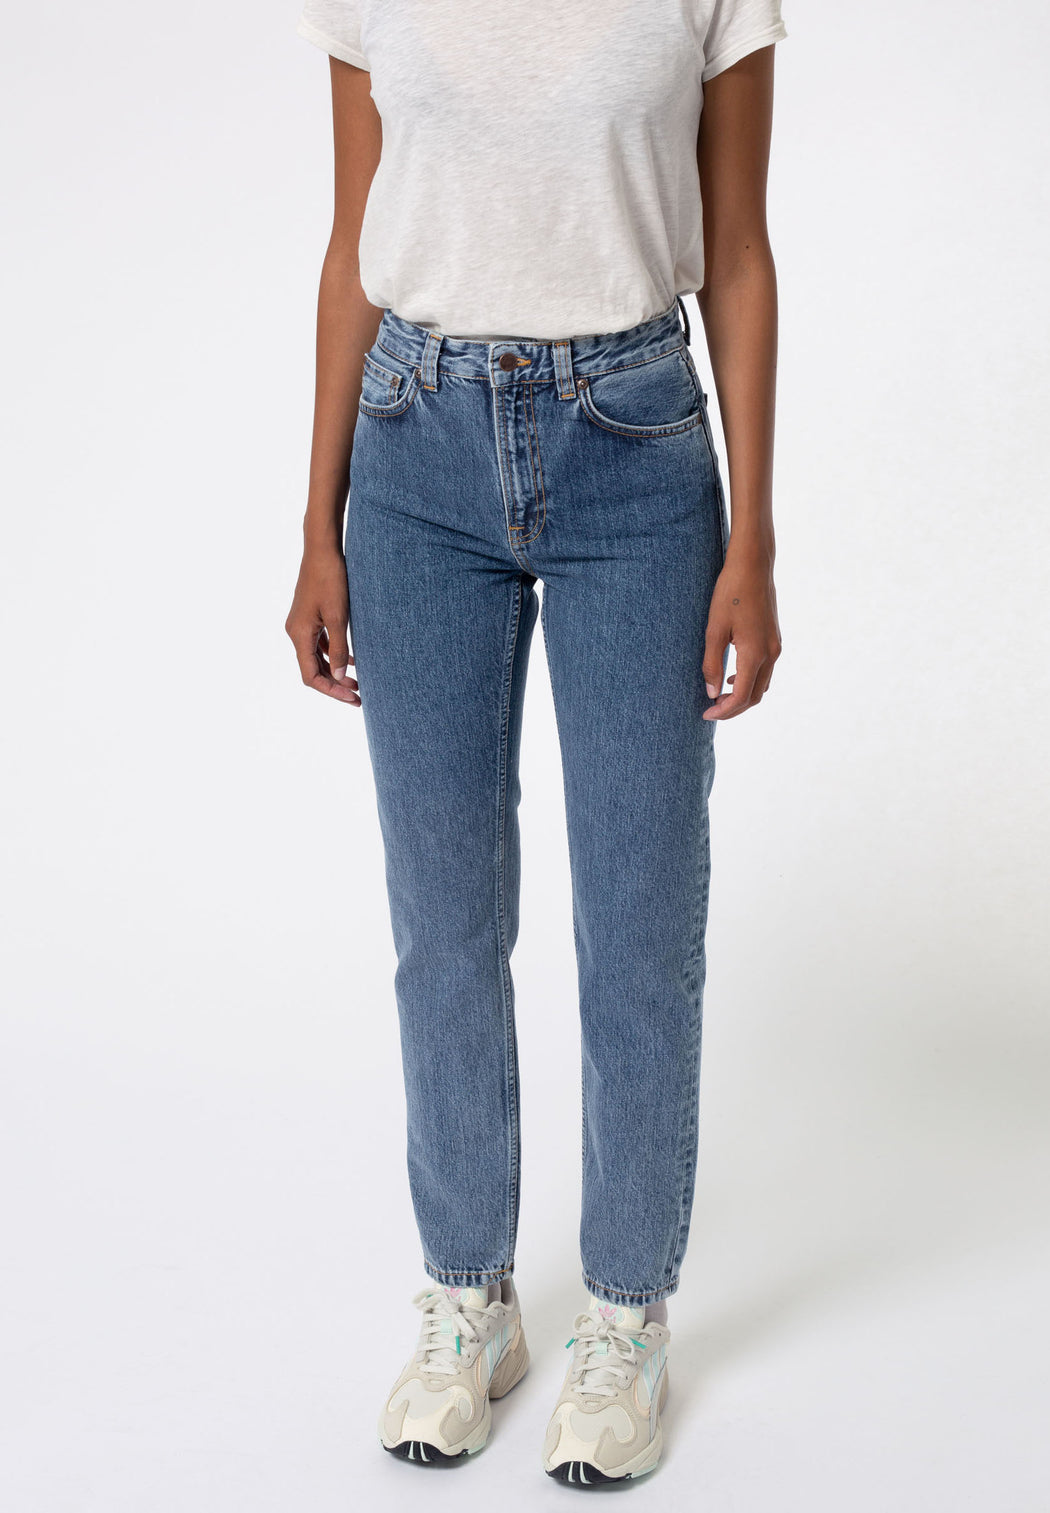 jeans breezy britt friendly blue